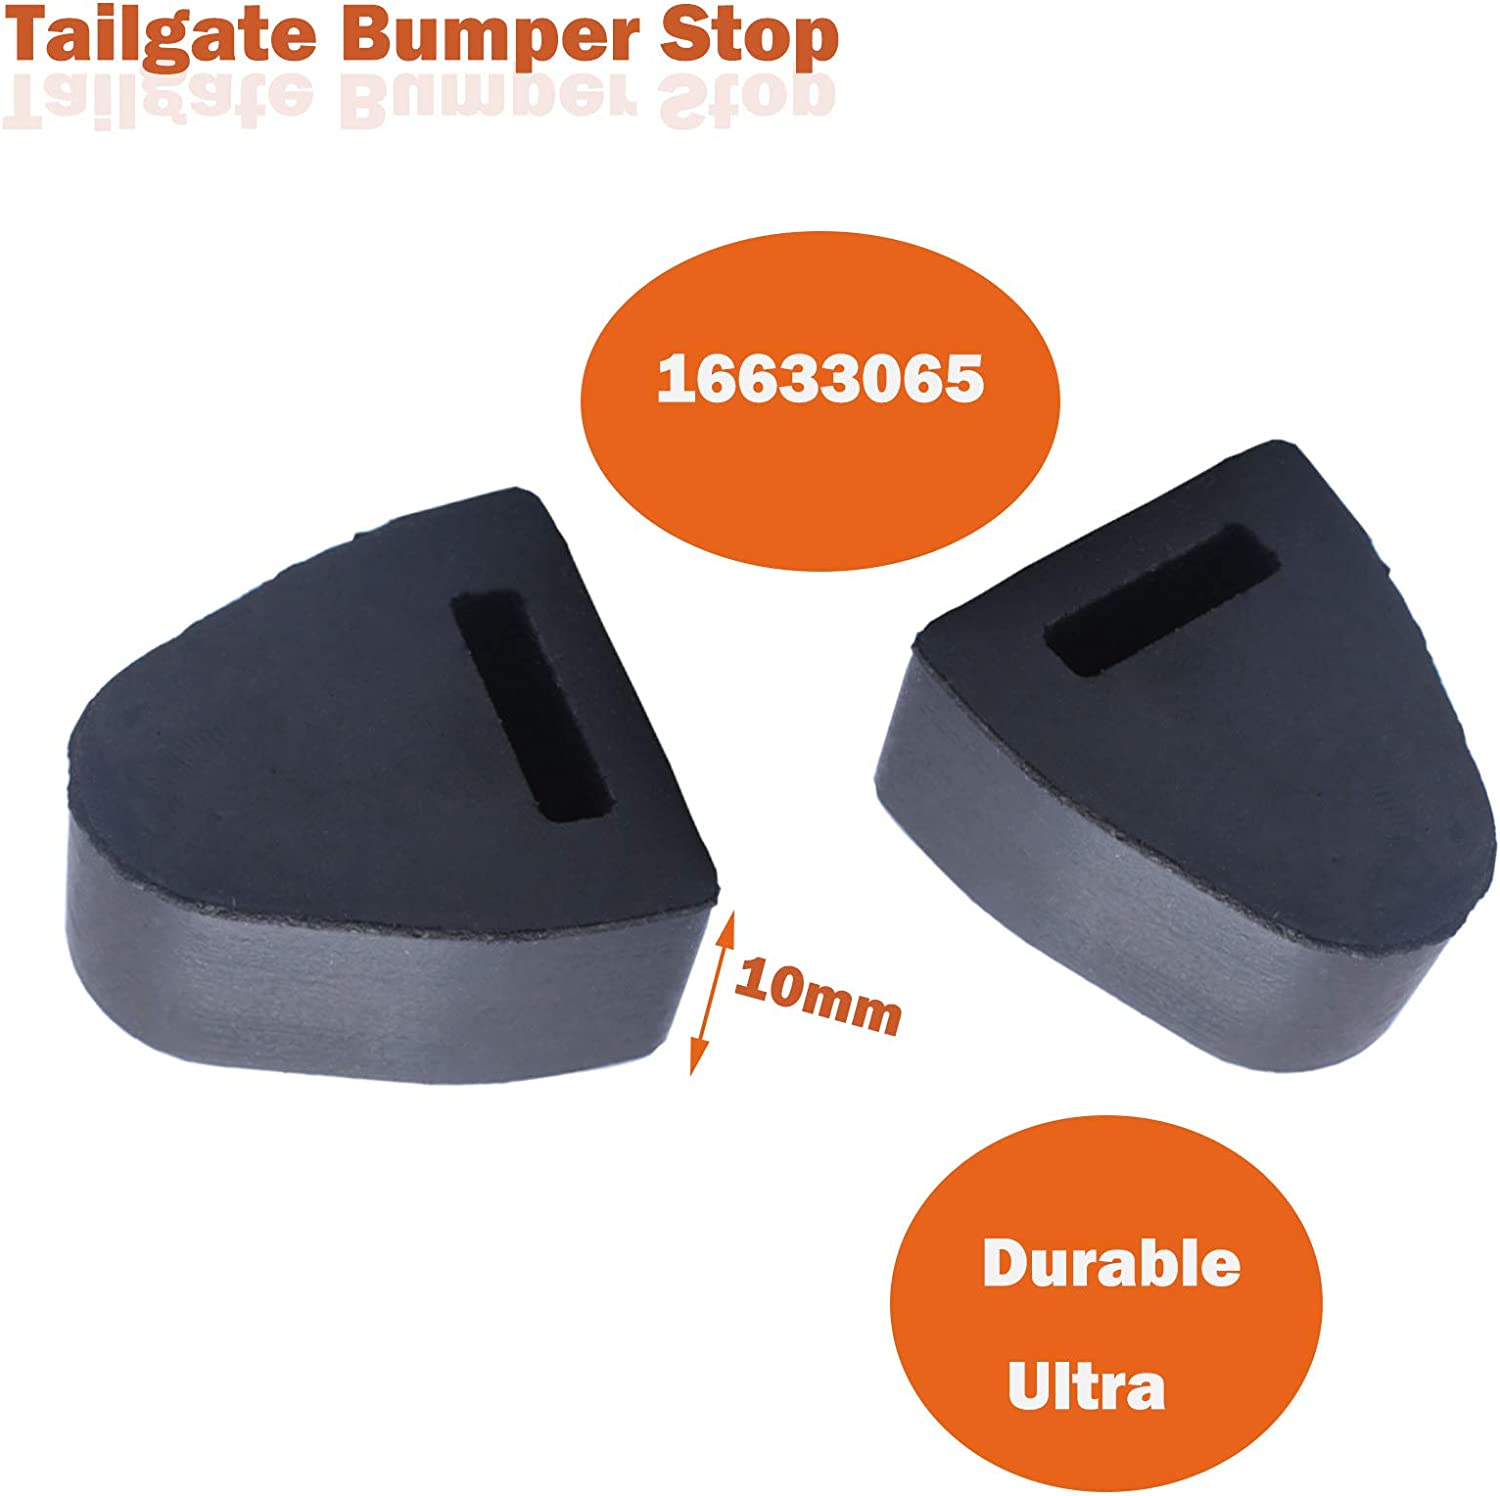 Replaces for GM 16633065 Dorman 45679 by Ketofa Right or Left Rubber Tailgate Bumpers Stop 16633065 Tailgate Latch Bumper Stop for 1999-2007 Chevy Silverado GMC Sierra Pickup